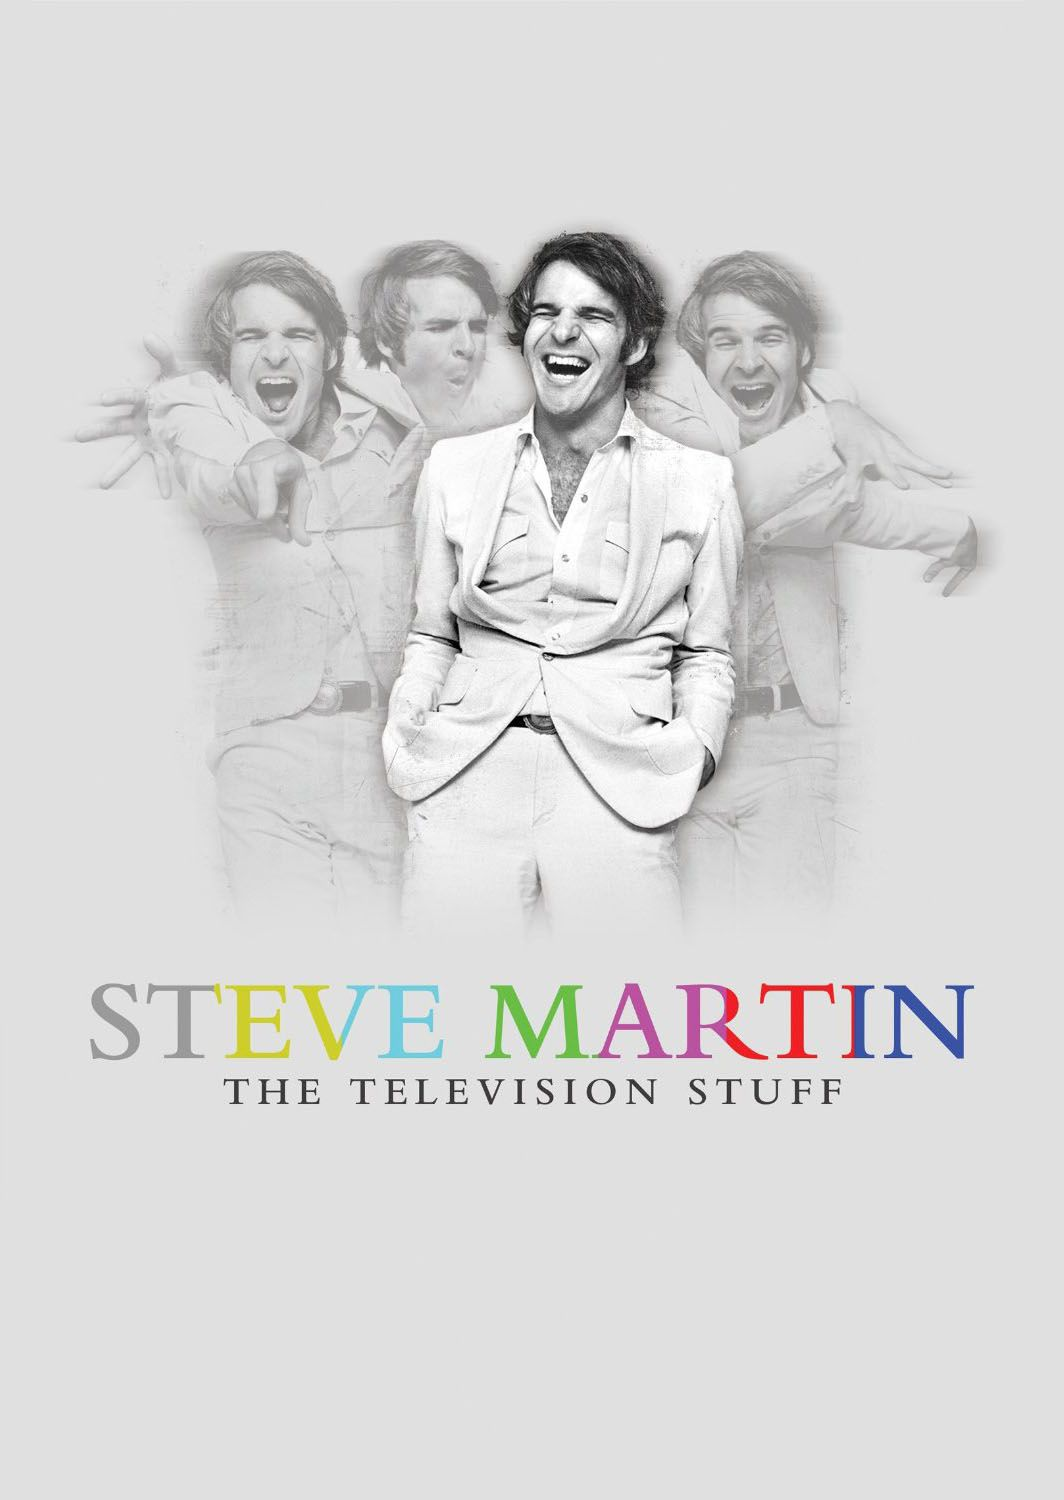 Pathos Tv Porno review: steve martin: the television stuff on shout! factory